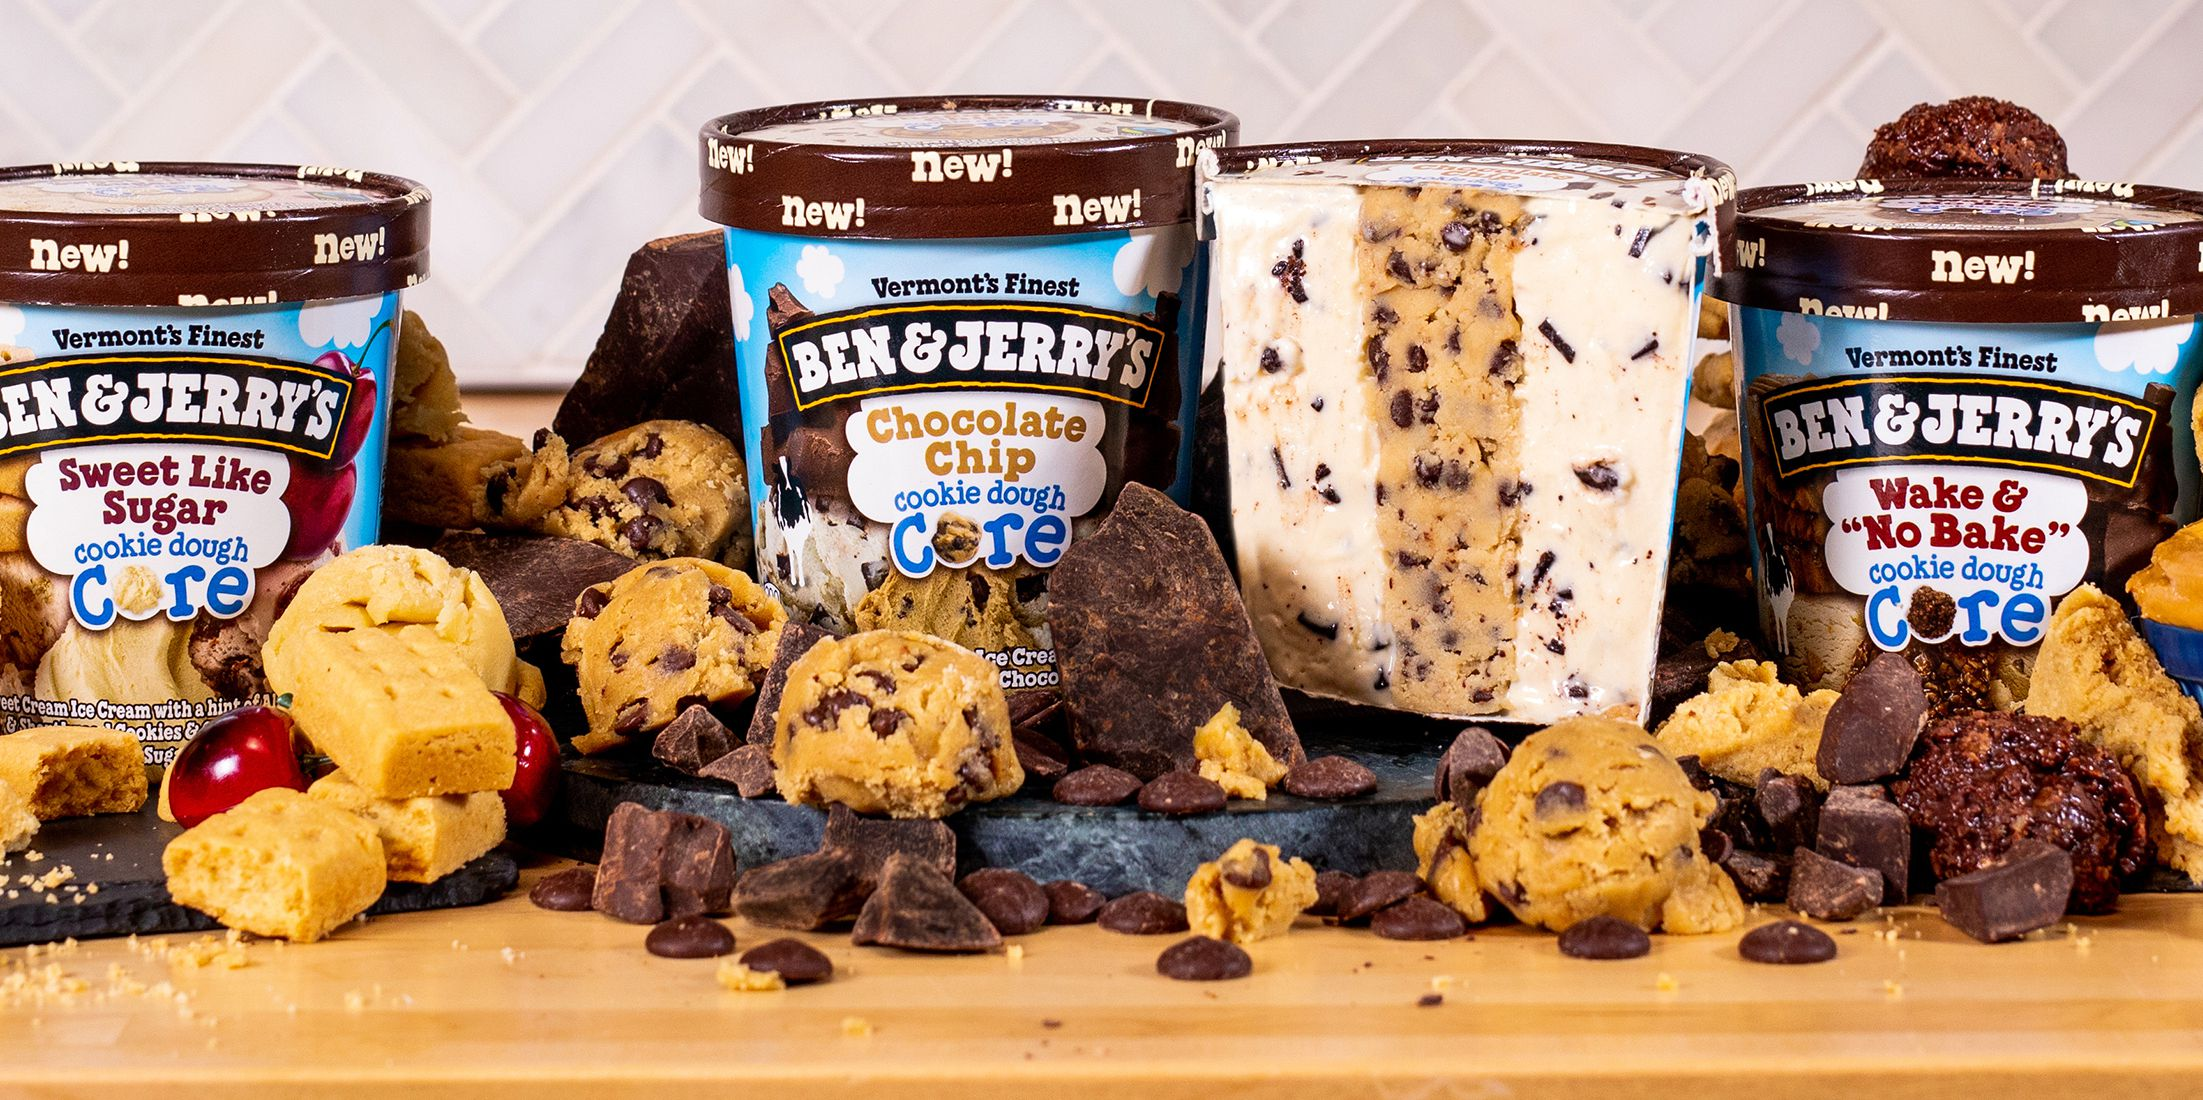 Calling All Cookie Dough Lovers: Ben & Jerry's Three New Flavors Were Made Just for You